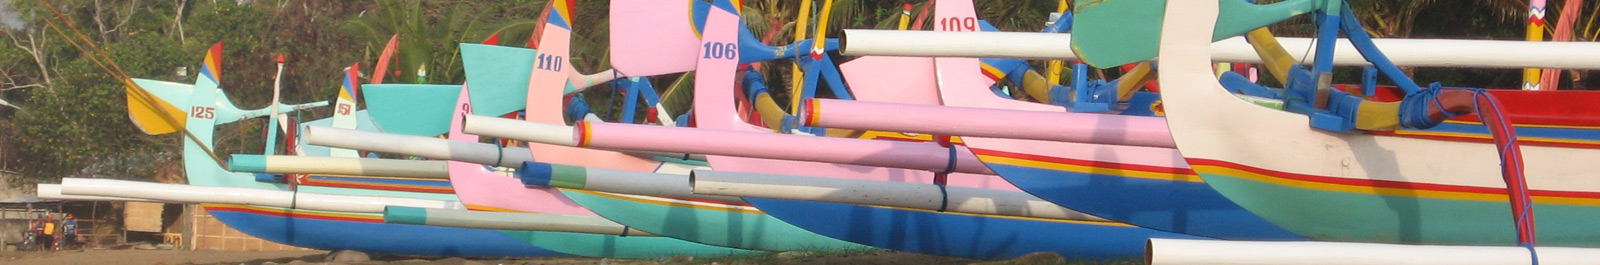 Banner Boote